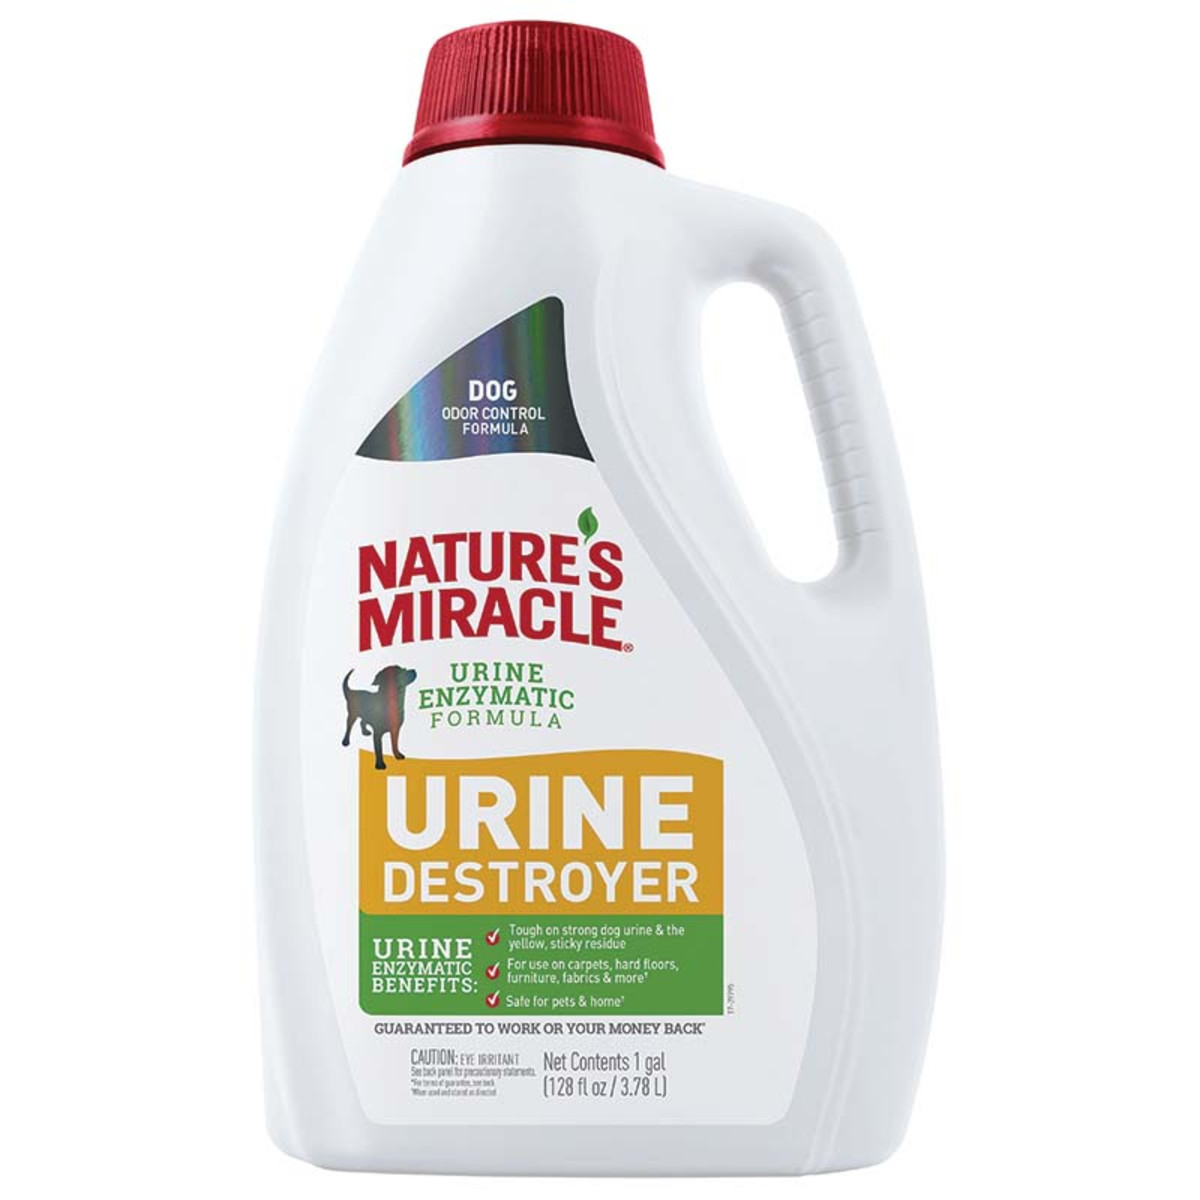 Nature's Miracle Urine Destroyer Enzymatic Stain and Odor Remover